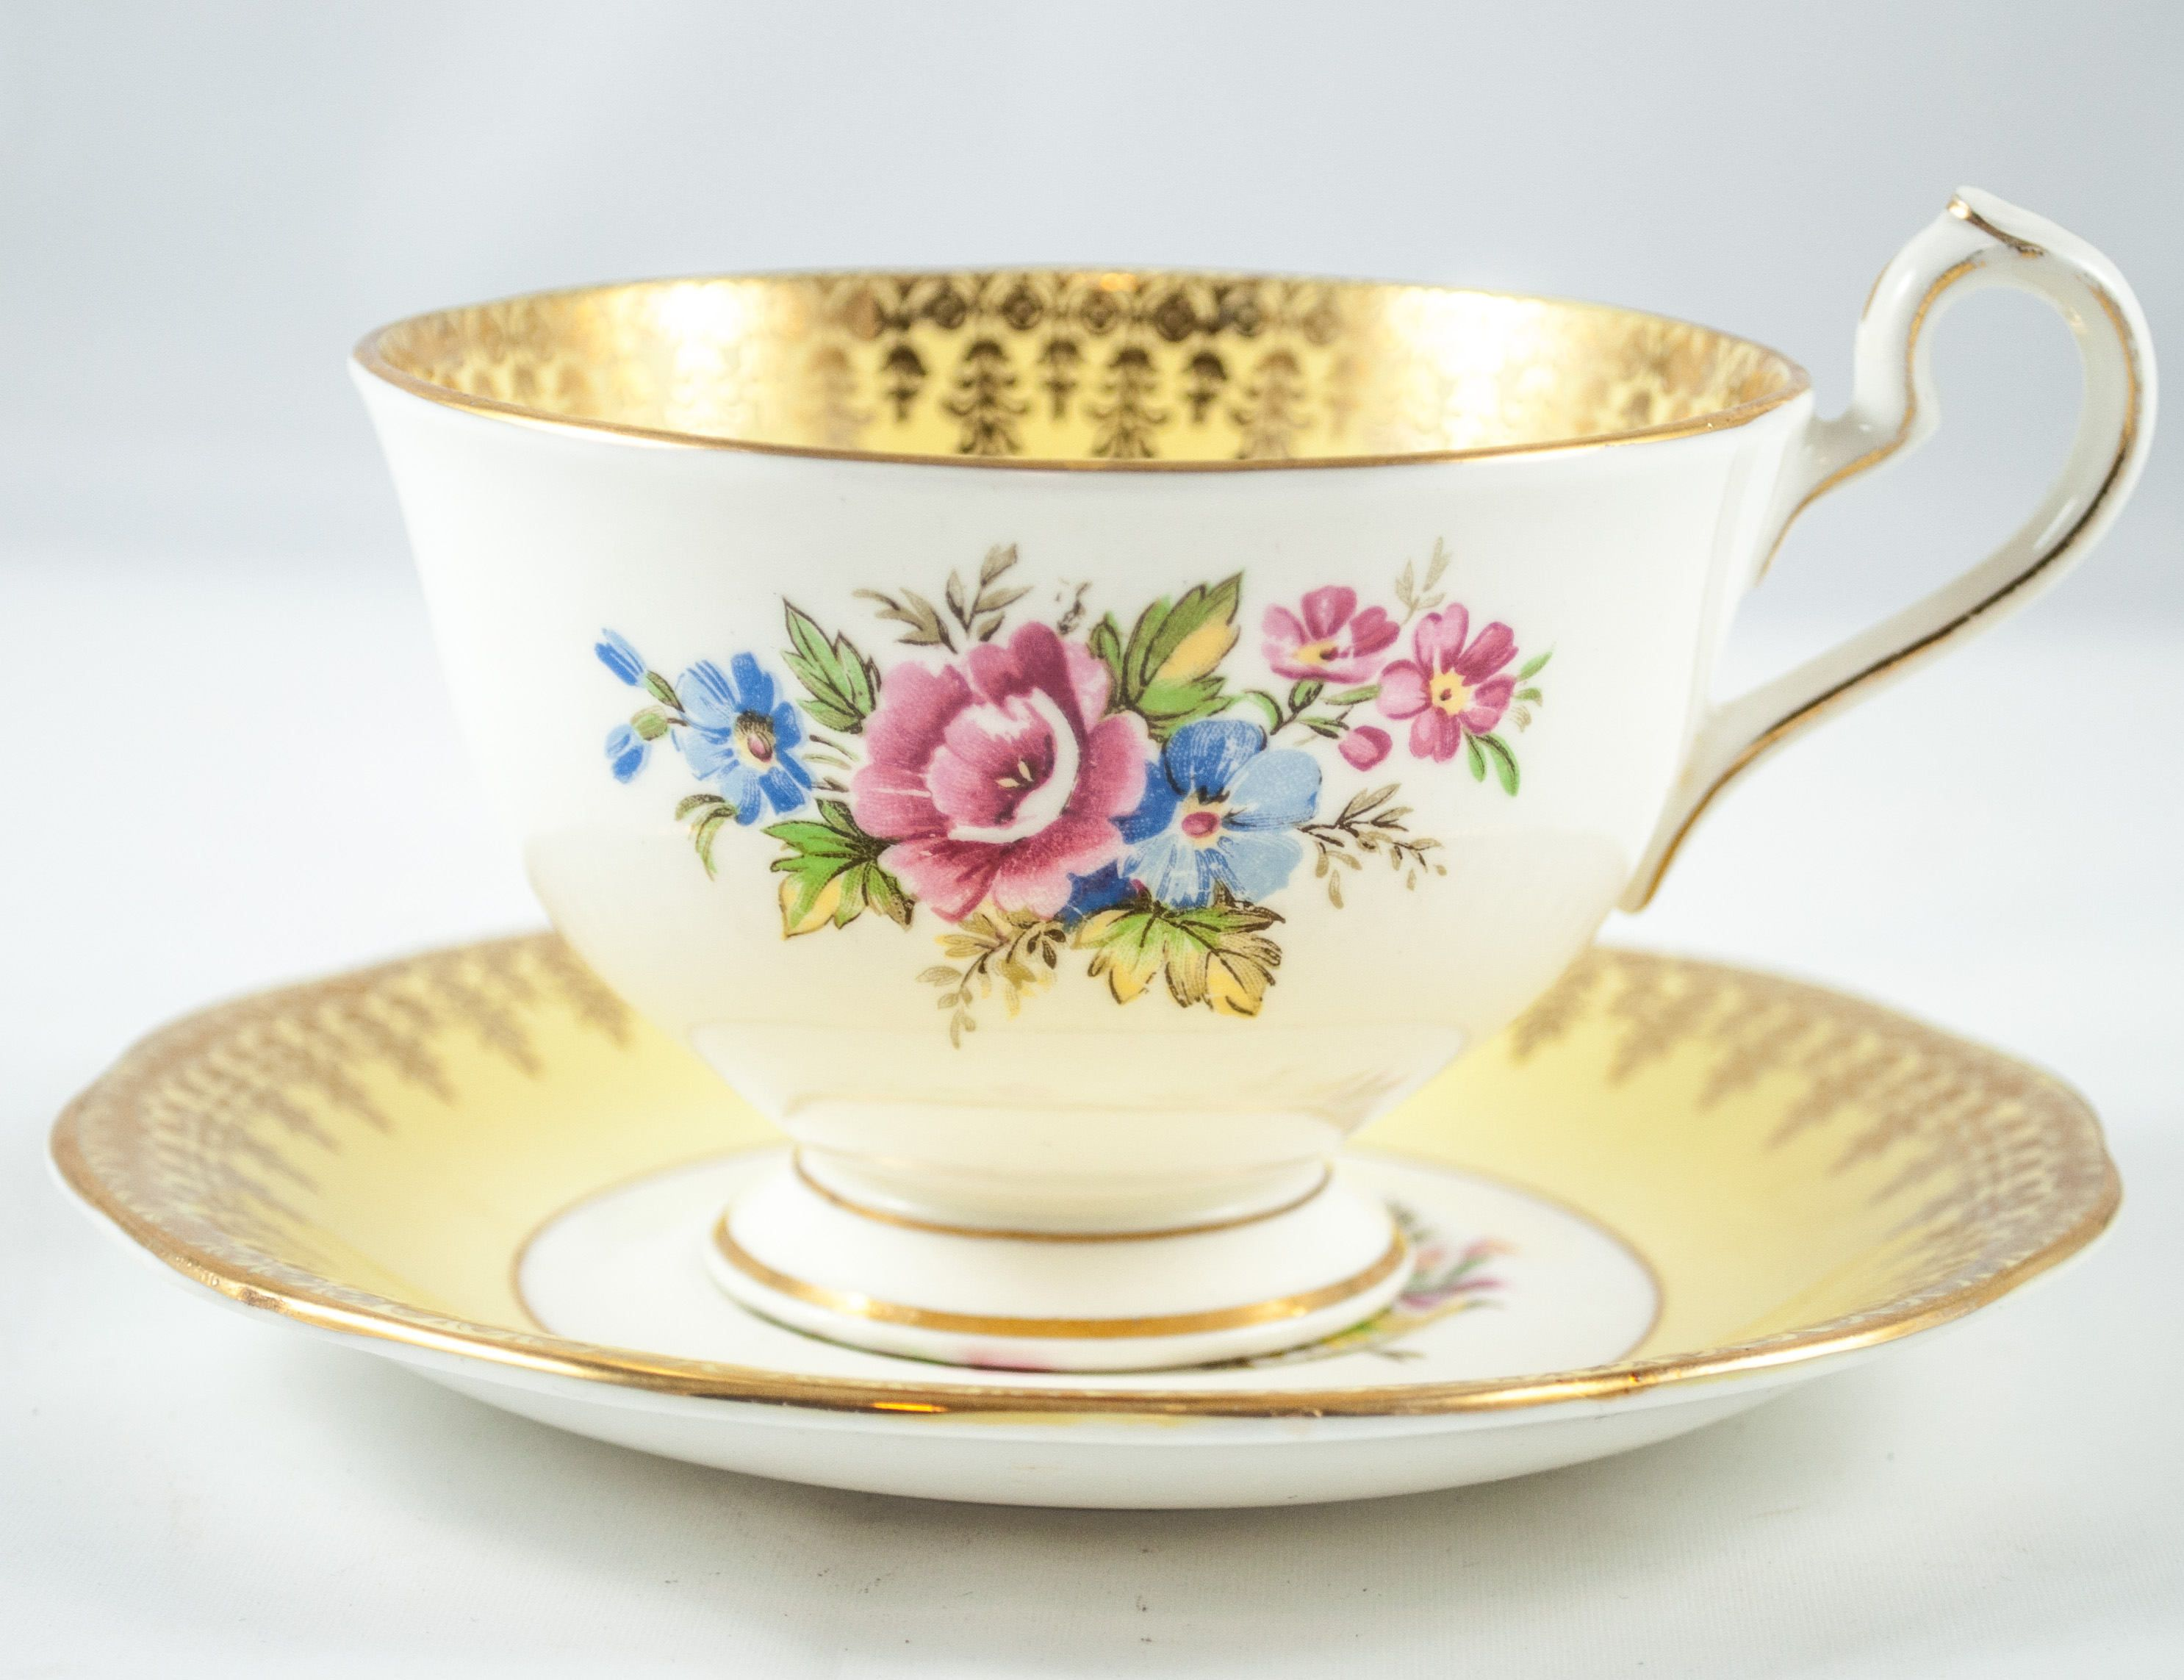 queen anne teacup gold and yellow teacup and saucer wedding gift vintage english bone china. Black Bedroom Furniture Sets. Home Design Ideas